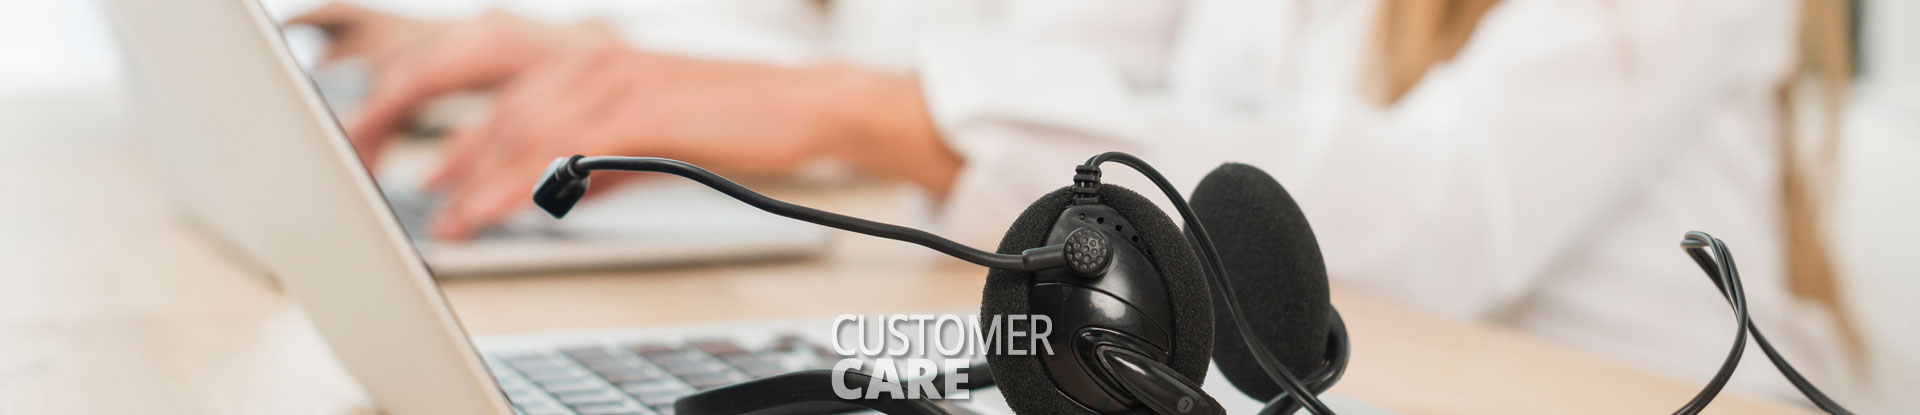 Customer Care | Captain Polyplast Ltd.